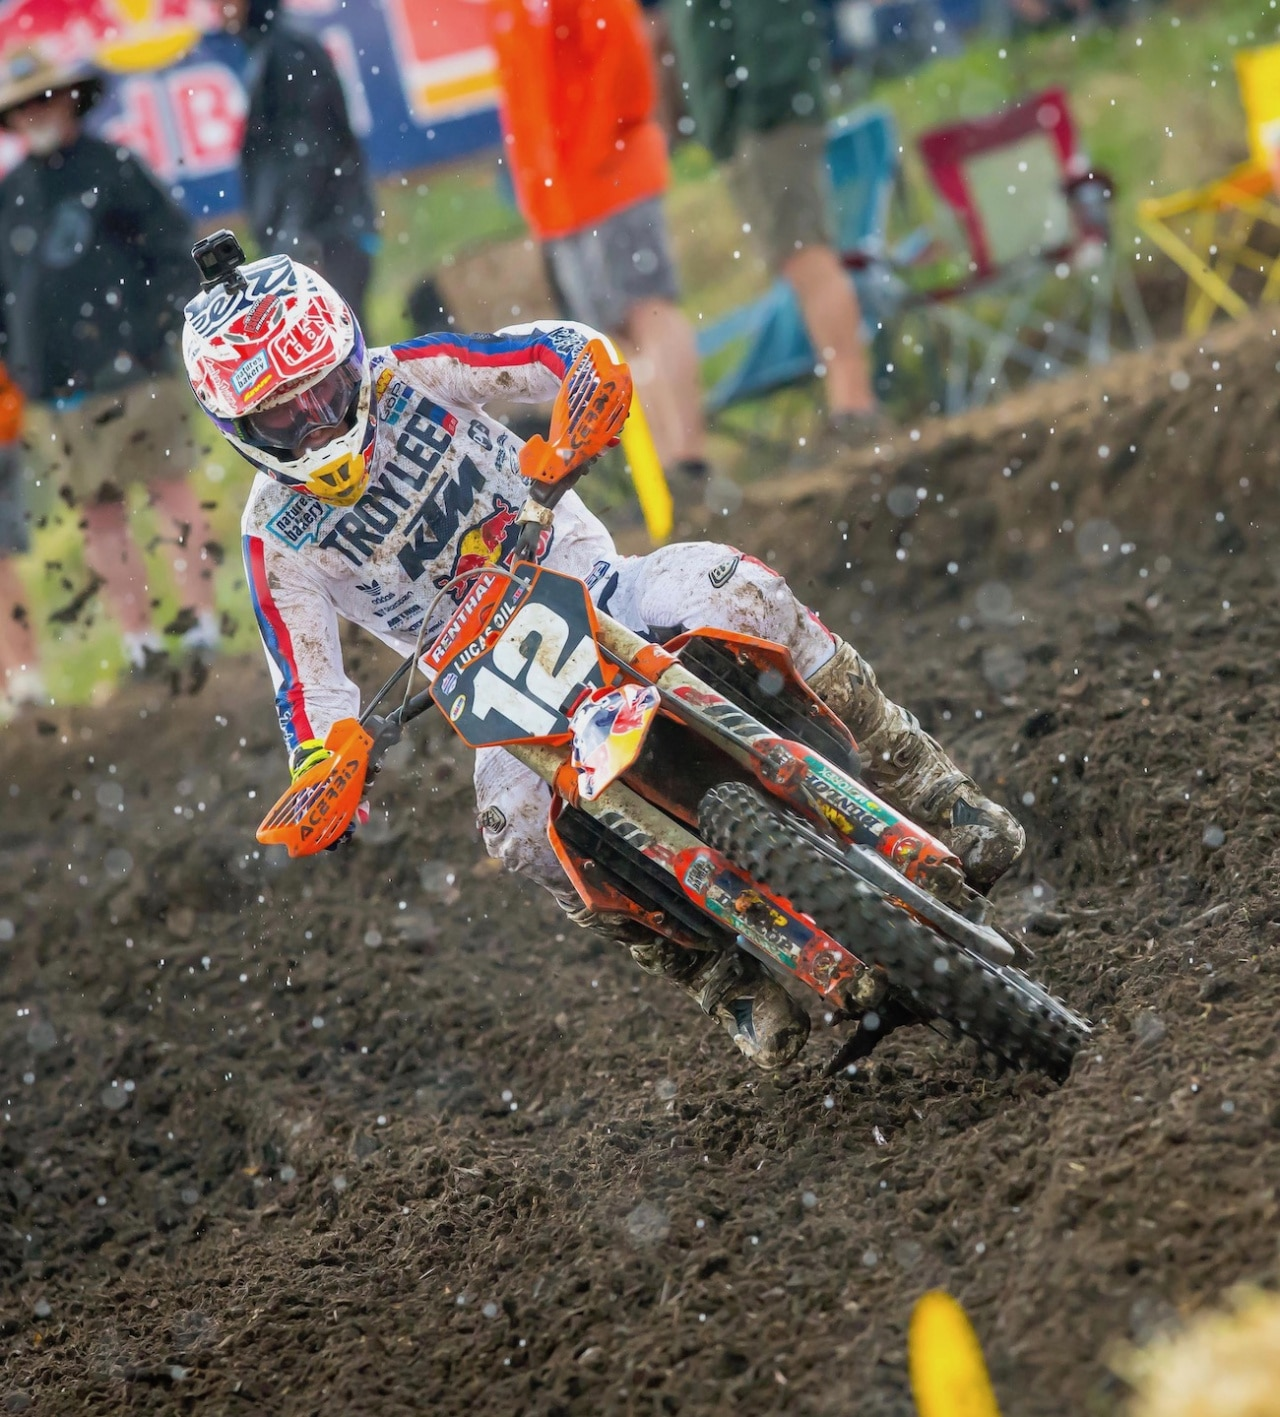 MXA'S WEEKEND NEWS ROUND-UP: SUFFERING FROM NATIONAL